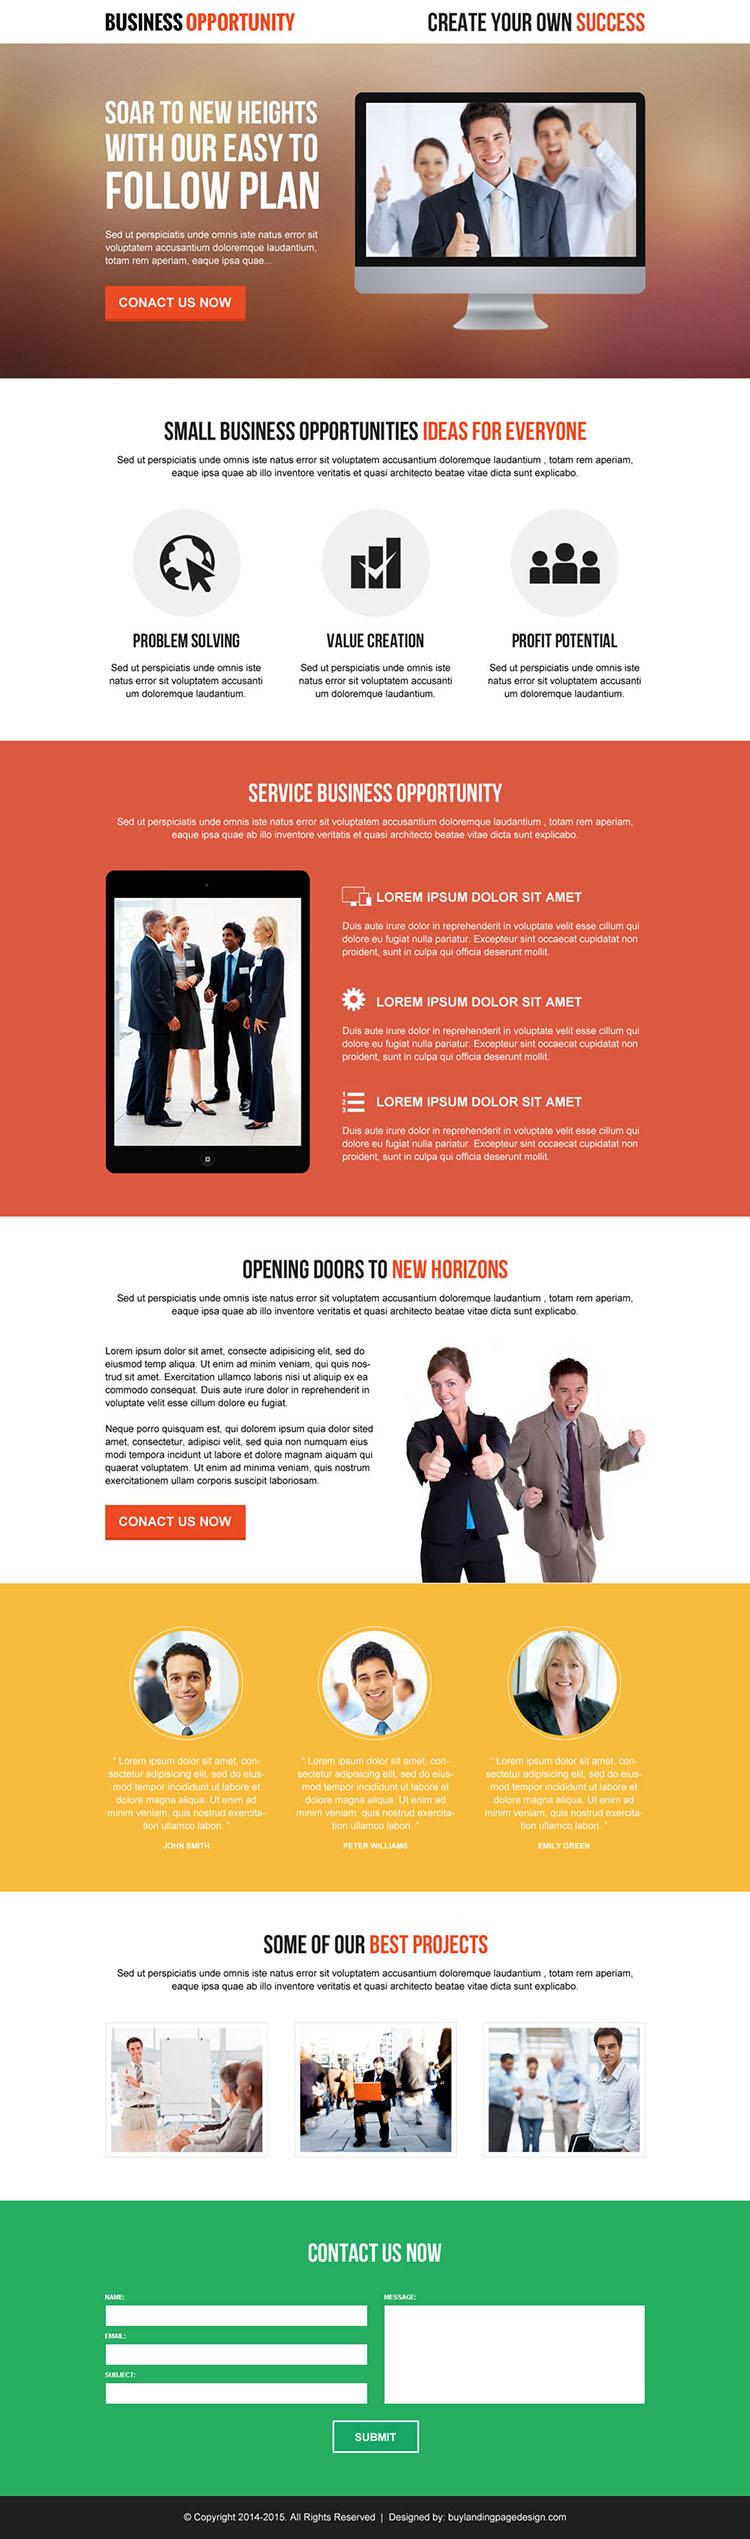 corporate business solutions call to action effective and modern landing page design